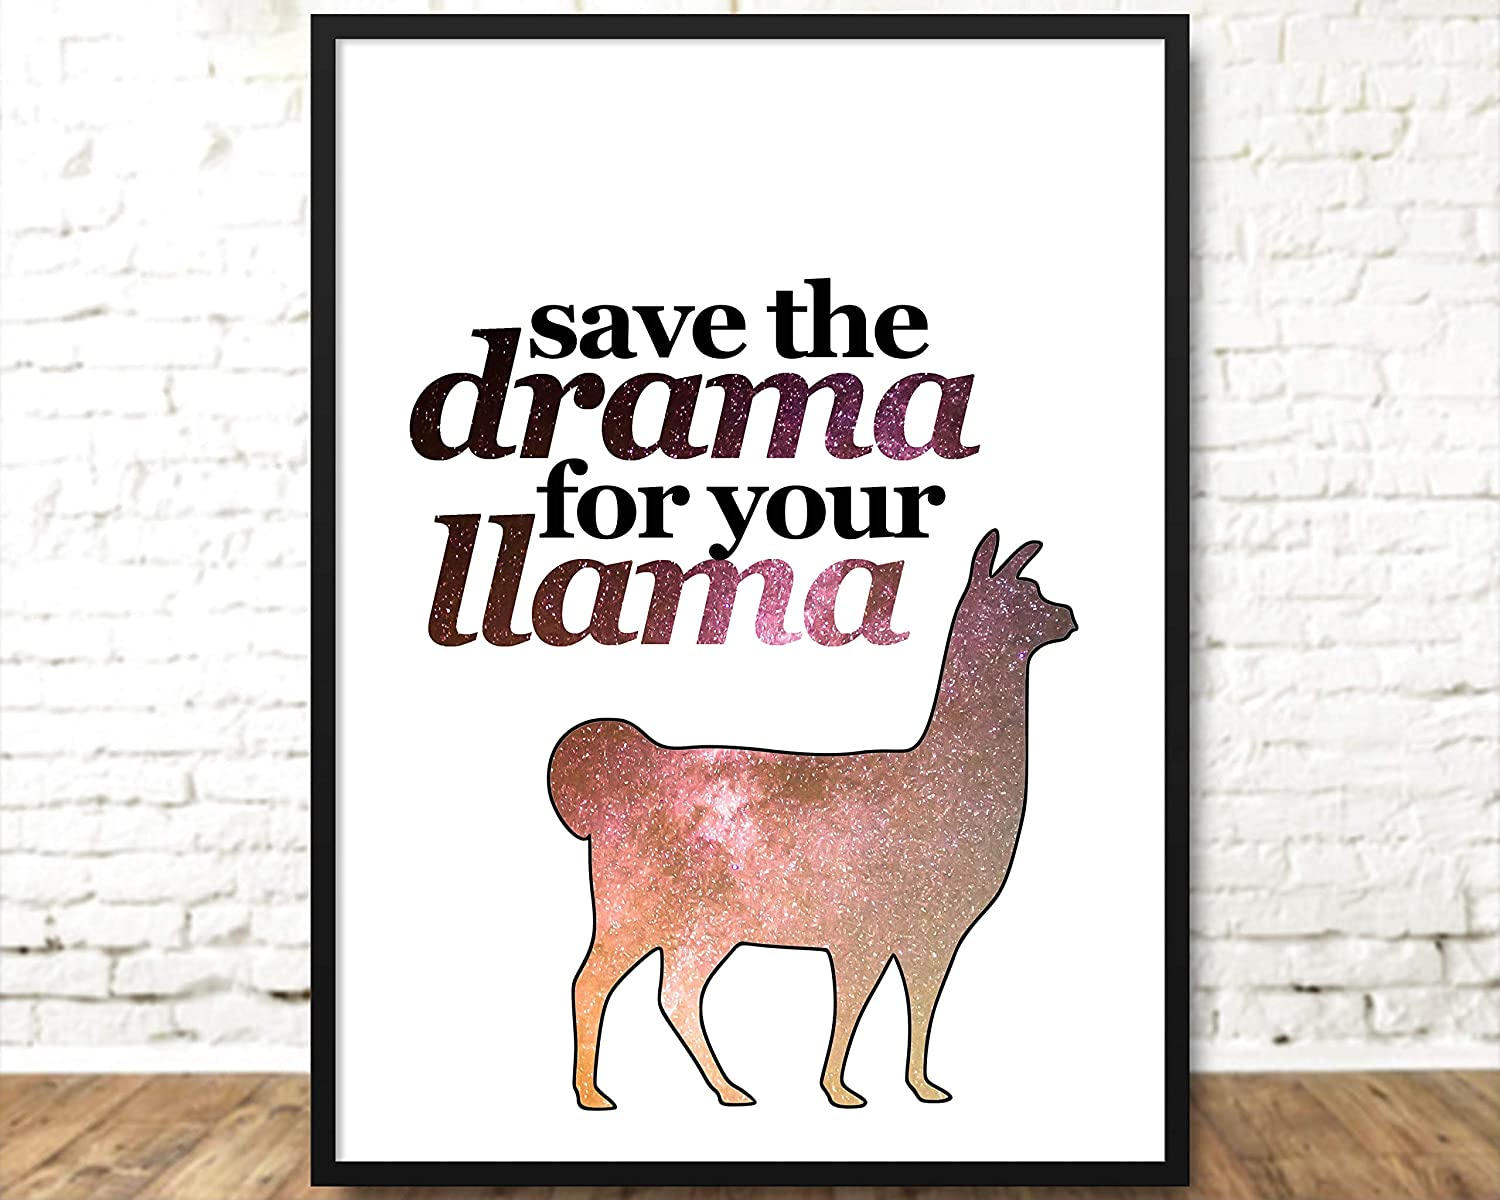 Save The Drama For Your Llama Print Wall Art Picture Poster Unframed 10cmx15cm 8x10 A4 A3